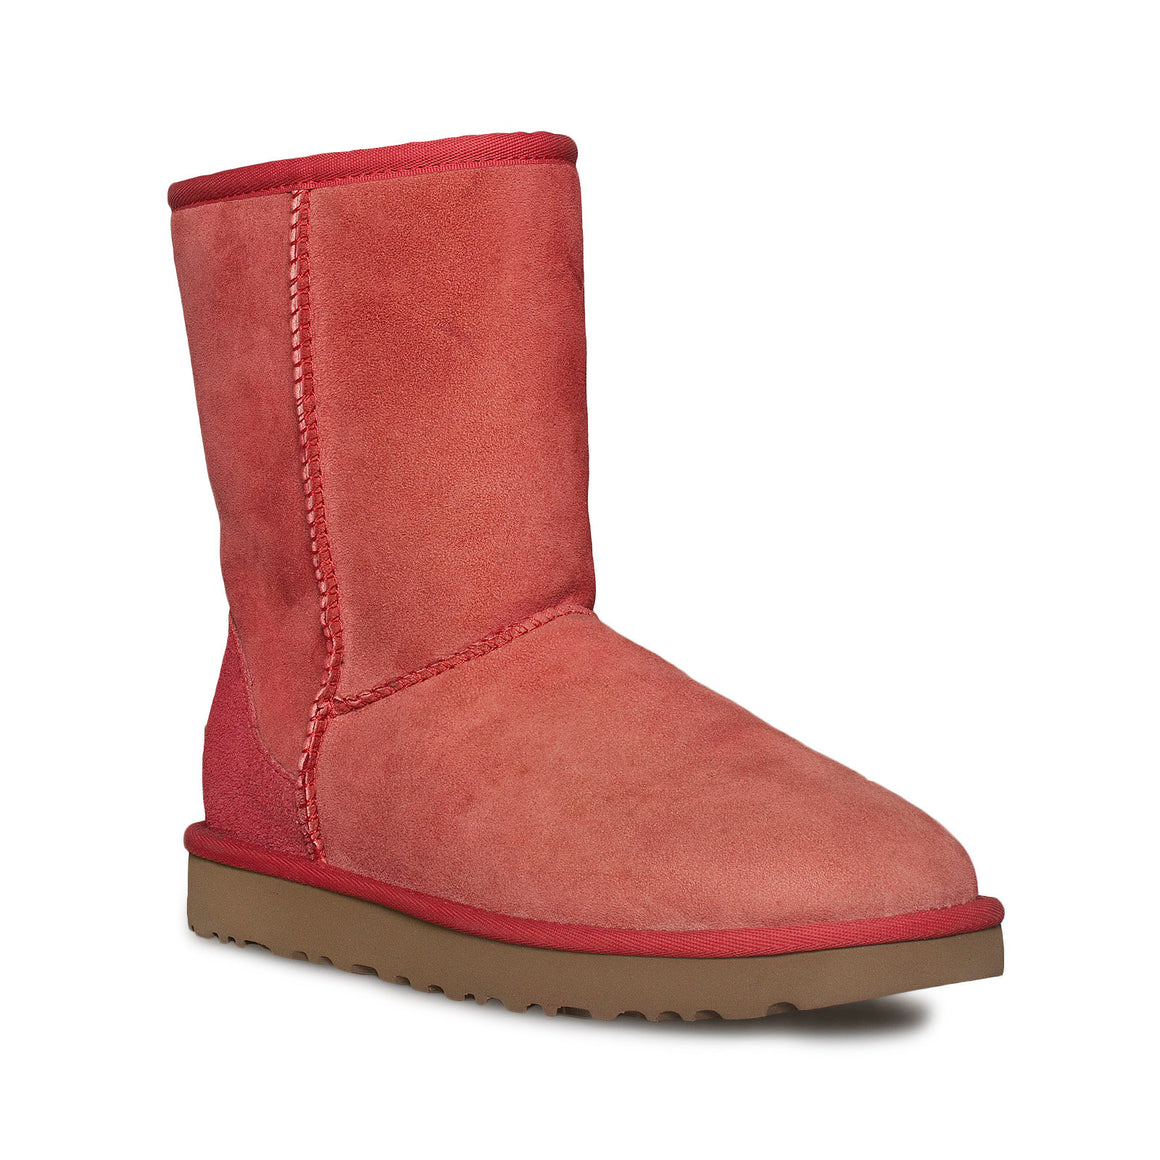 UGG Classic Short II Ribbon Red Boots - Women's